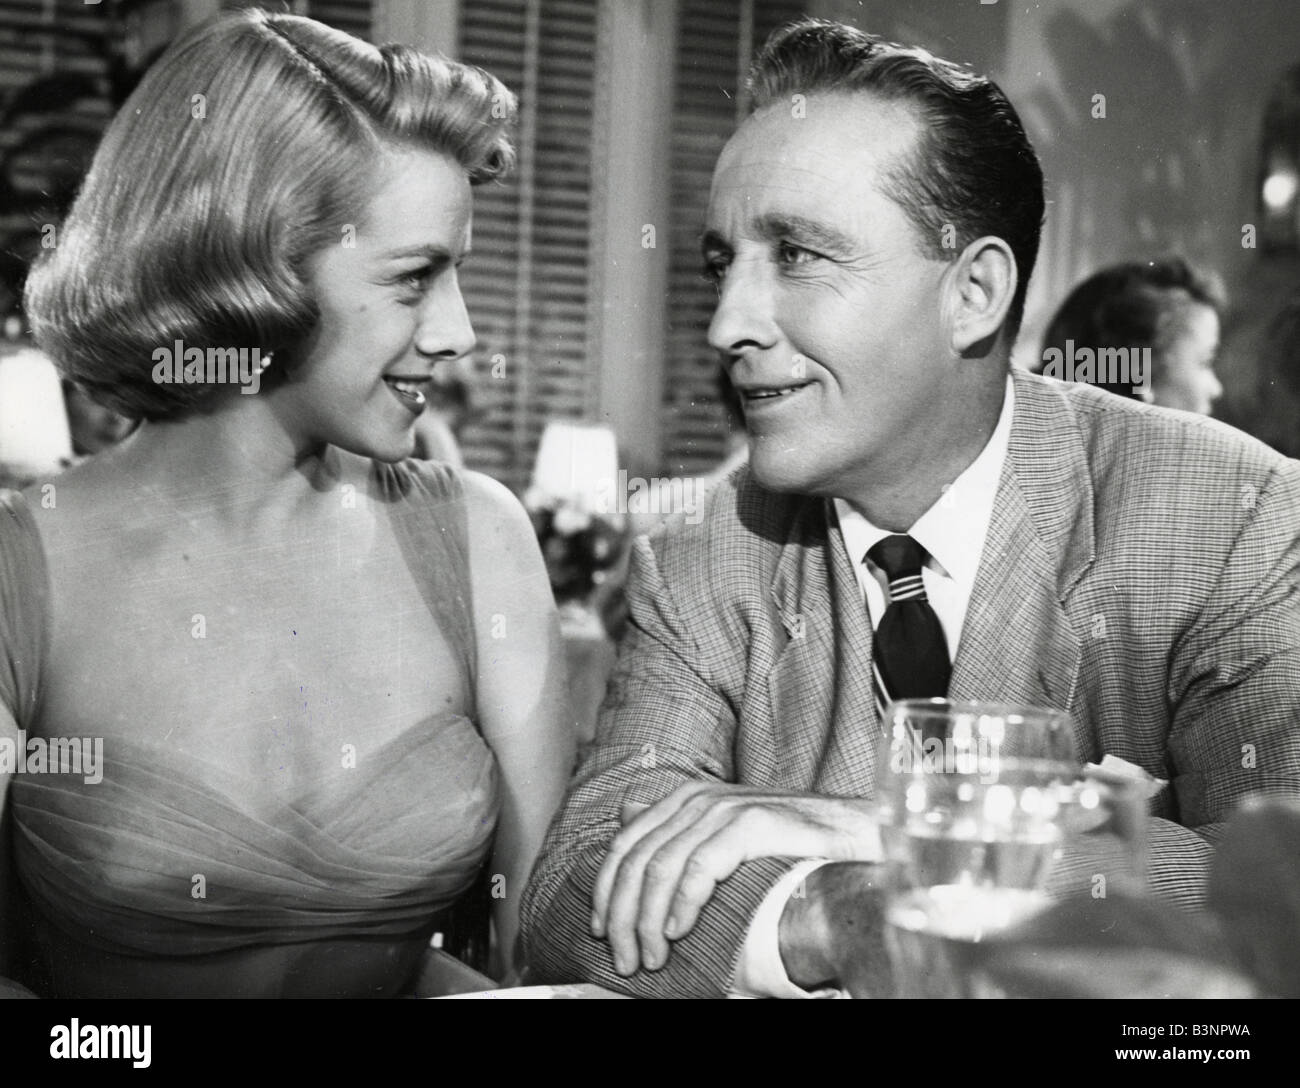 Bing Crosby White Christmas.White Christmas 1954 Paramount Film With Bing Crosby And